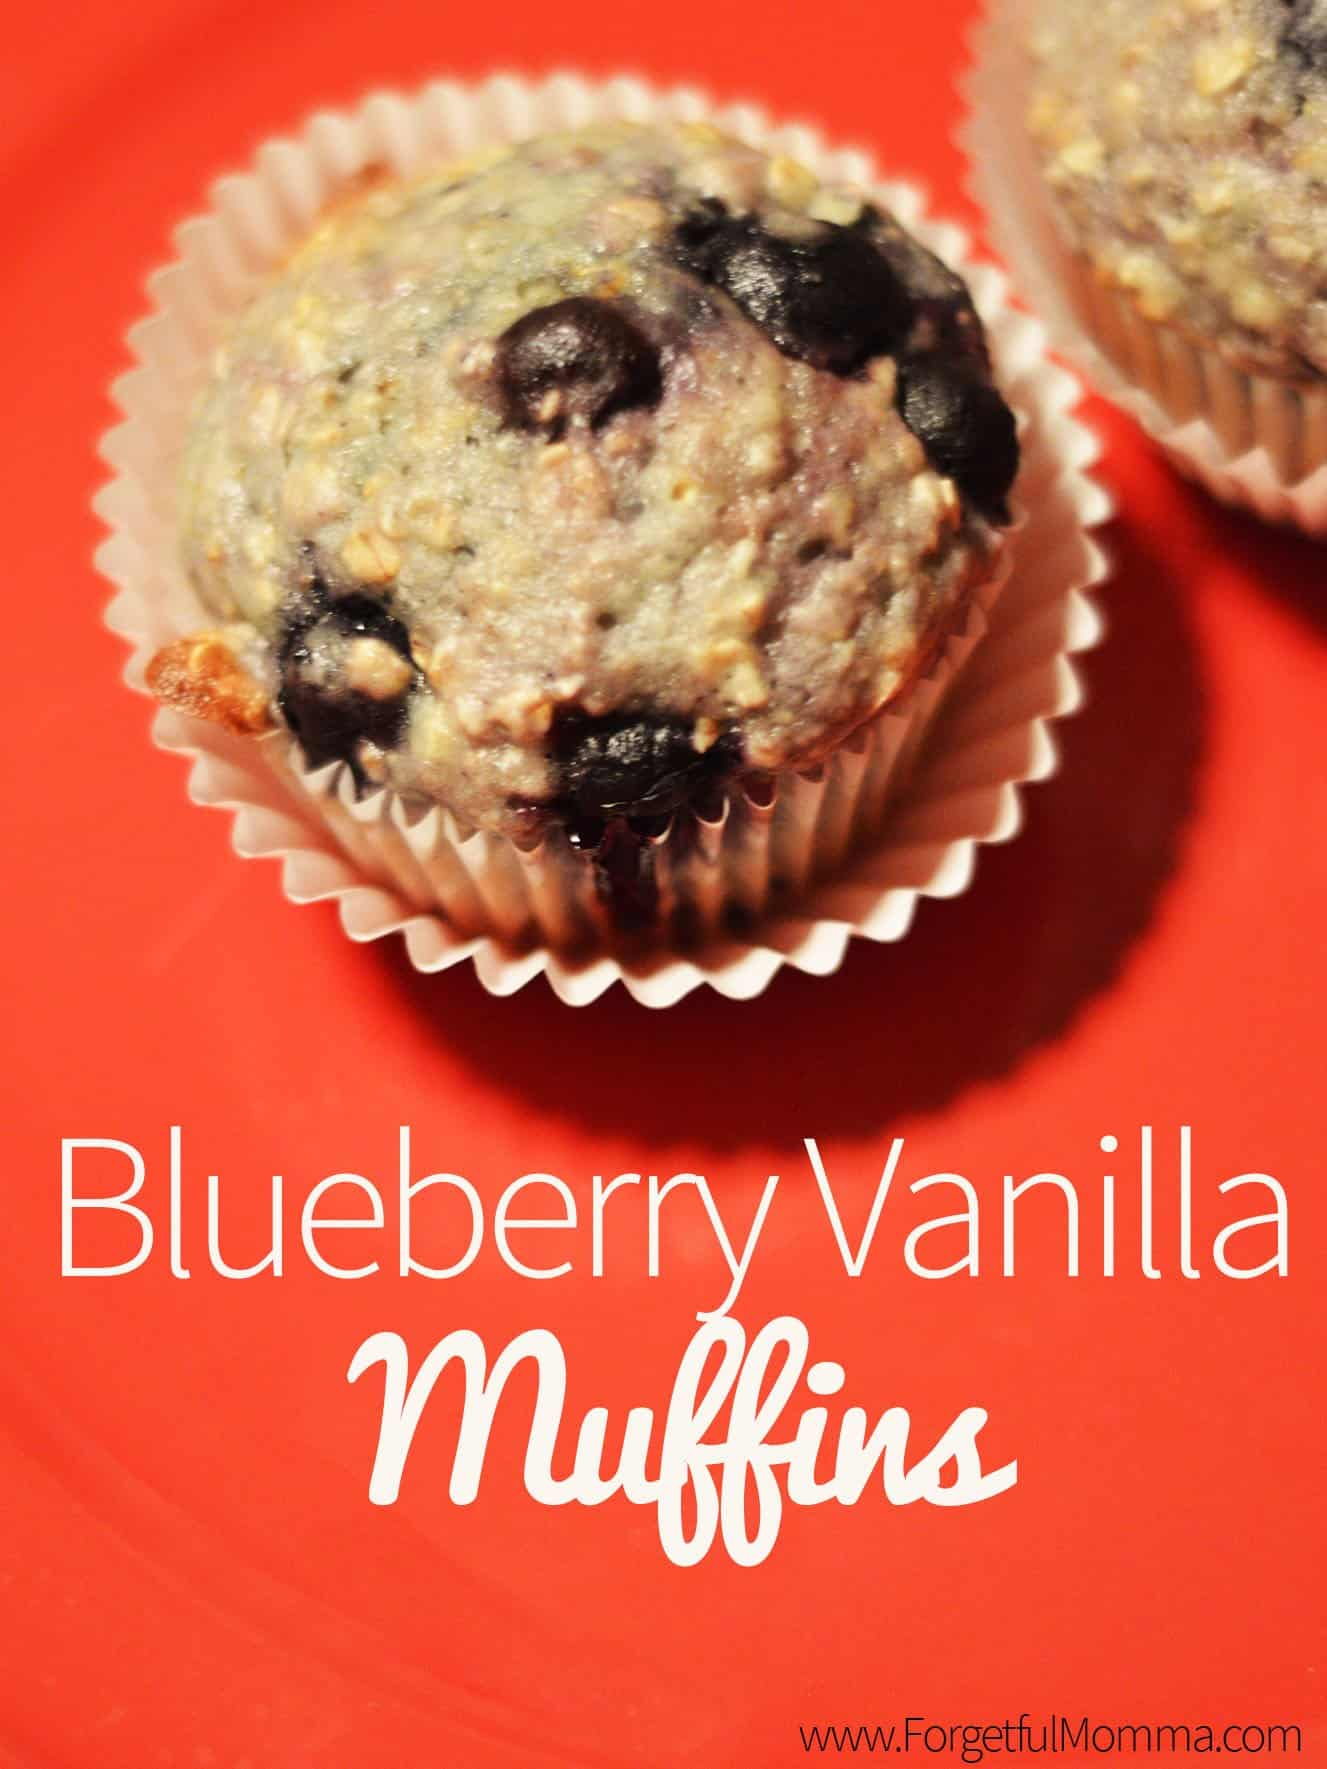 Blueberry Vanilla Muffin